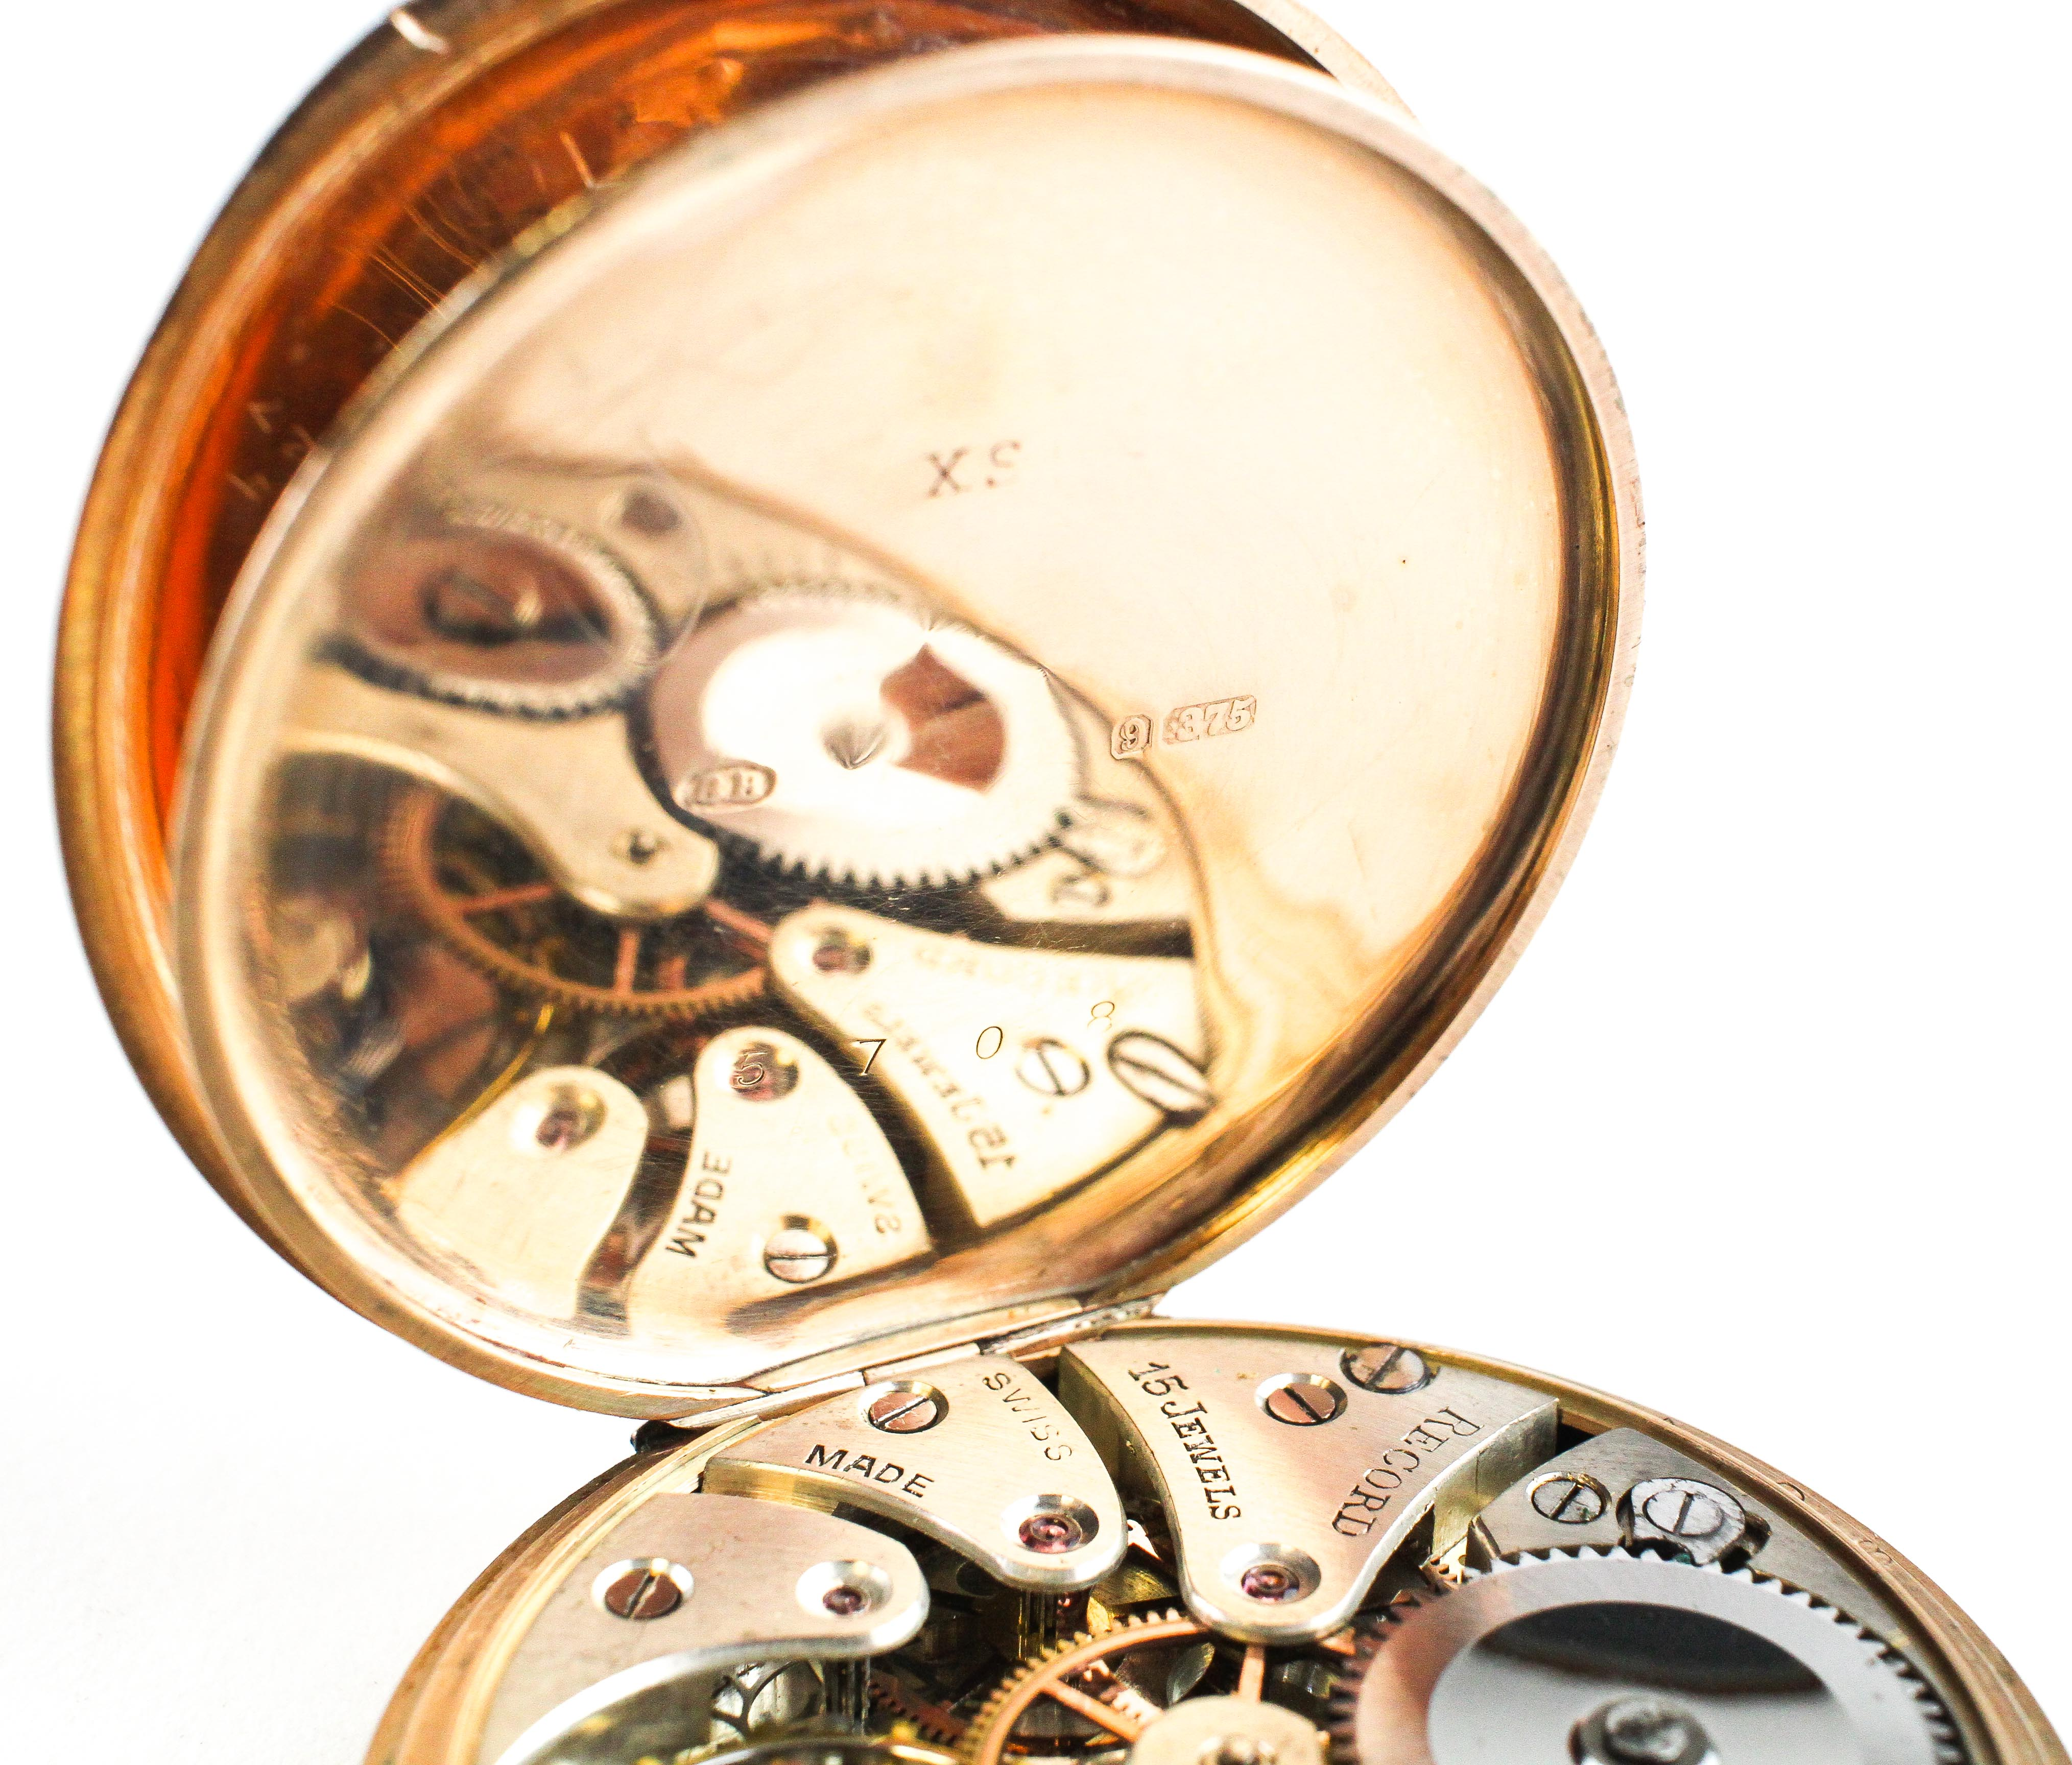 An open face pocket watch. Circular white dial with roman numerals. - Image 5 of 5